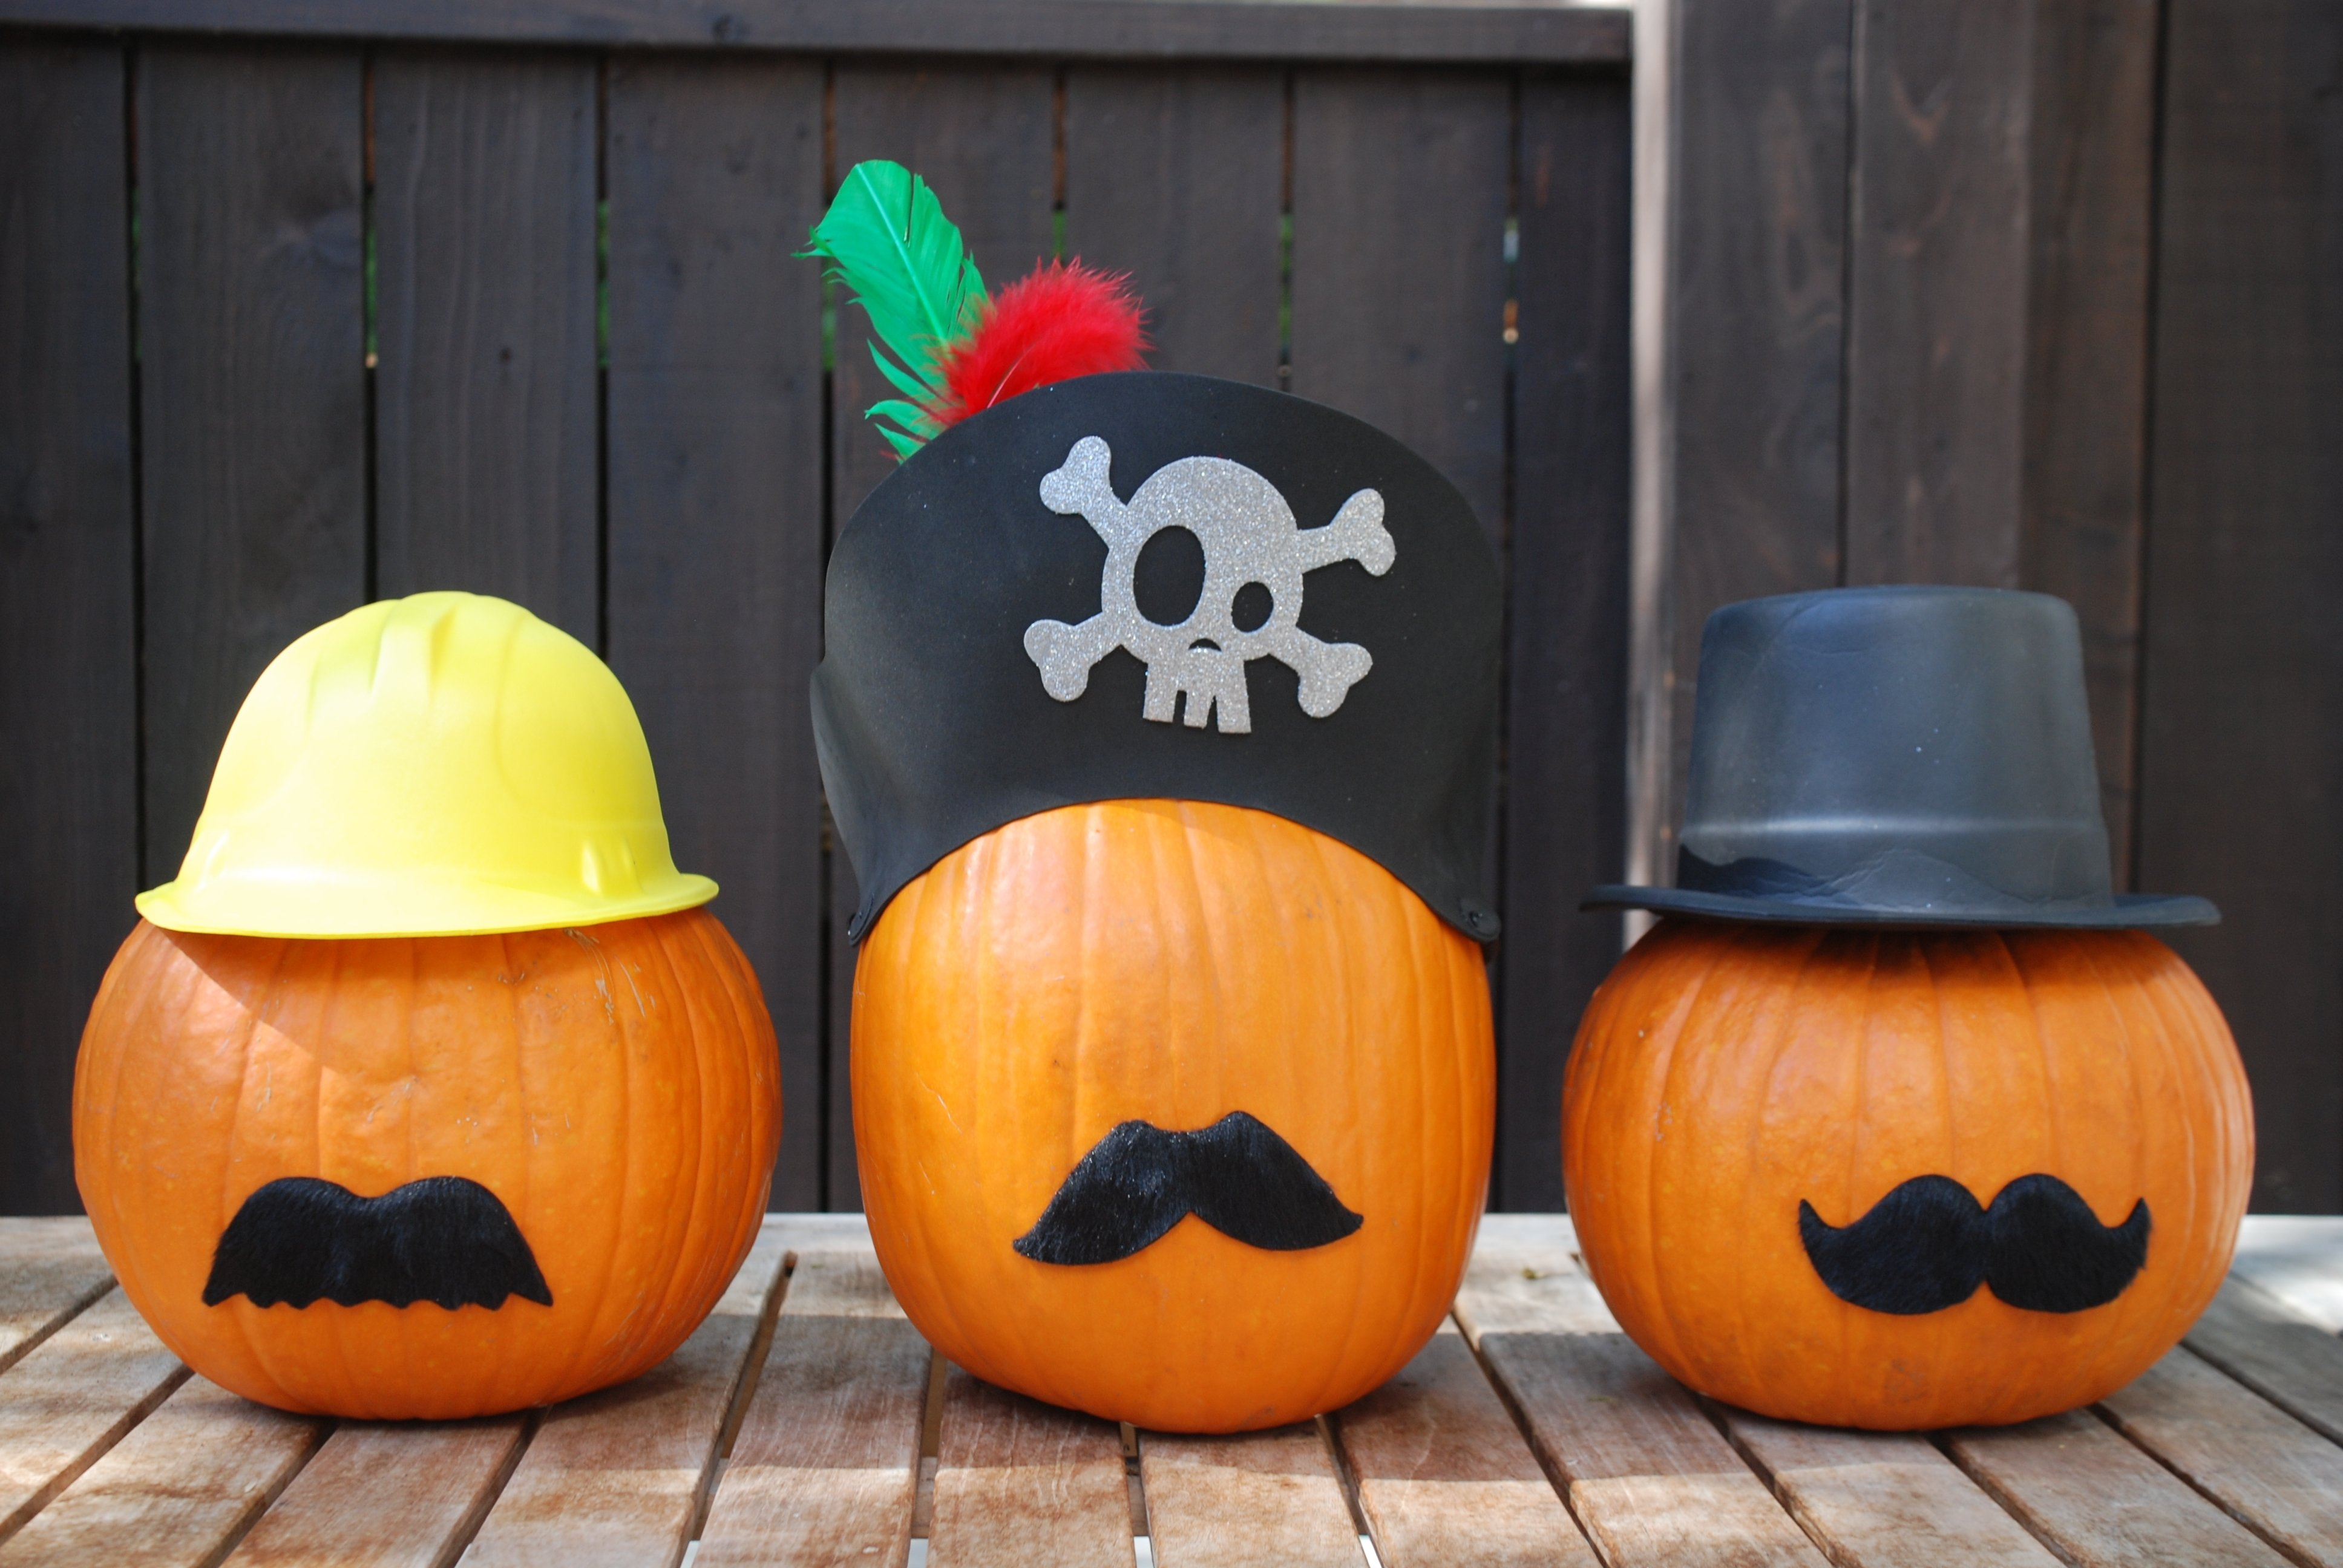 10 Most Recommended Pumpkin Decorating Ideas For Kids carve free pumpkin decorating ideas jane can 1 2020